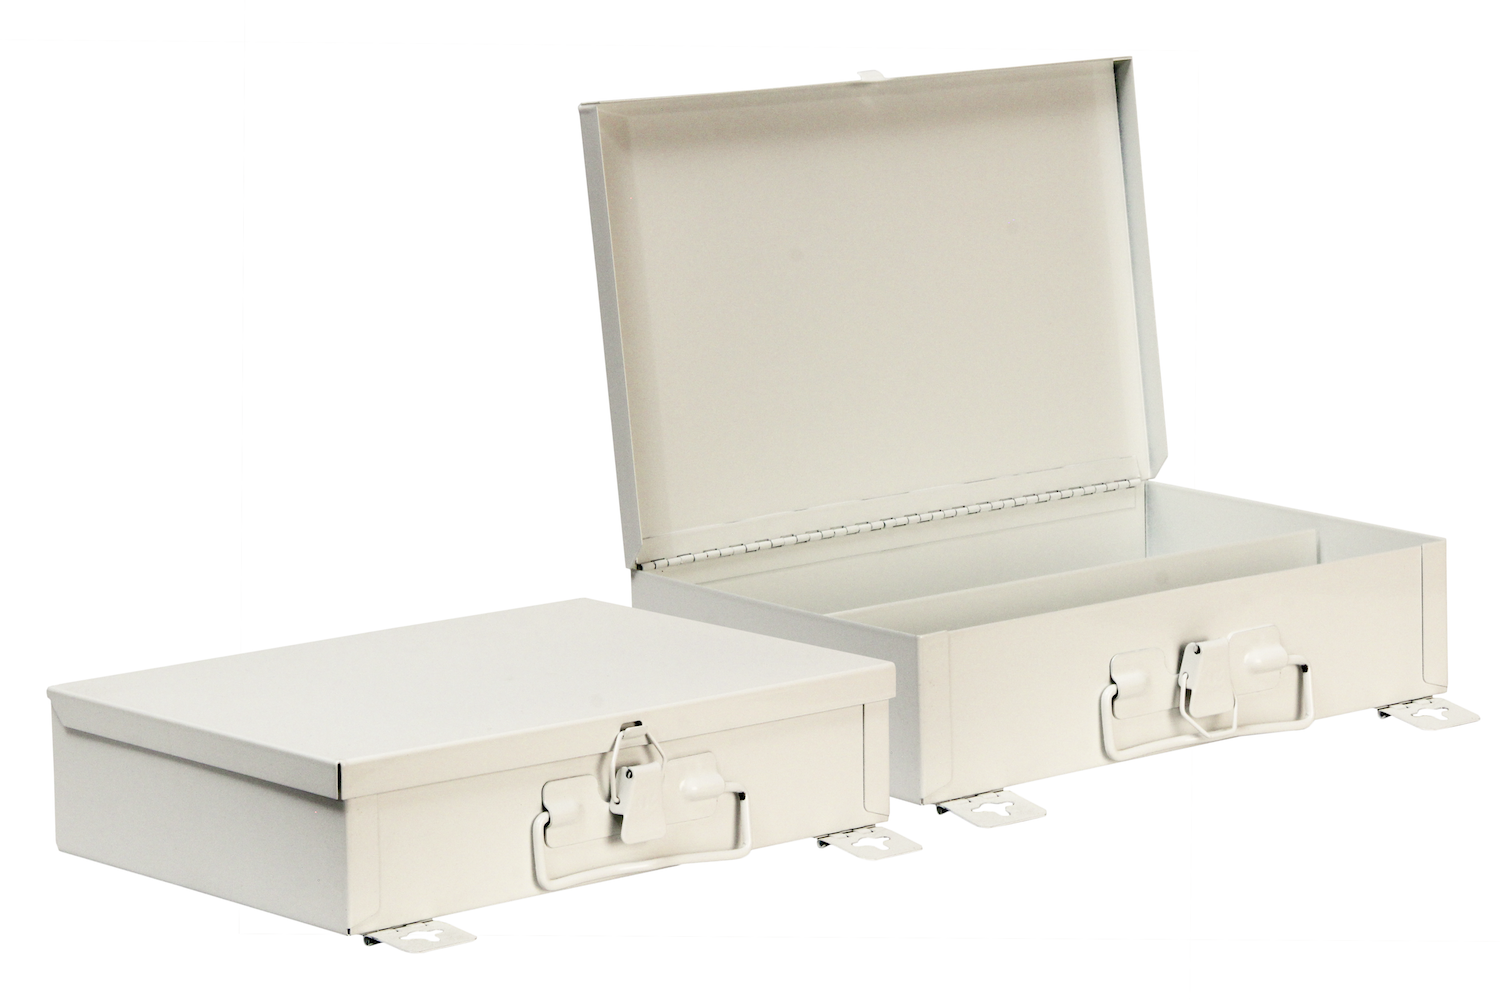 """#25 Unit First Aid Kit / Offset Partition    Inside dimensions 10 3/8 x 7 5/16 x 2 1/2"""" 22 ga steel / individual weight 2 lbs Shelf spacing top to bottom—2 3/4"""", 4 1/2"""" Master carton 12 per / 12 x 24 x 12"""" / 26 lbs Gloss white powder coating"""